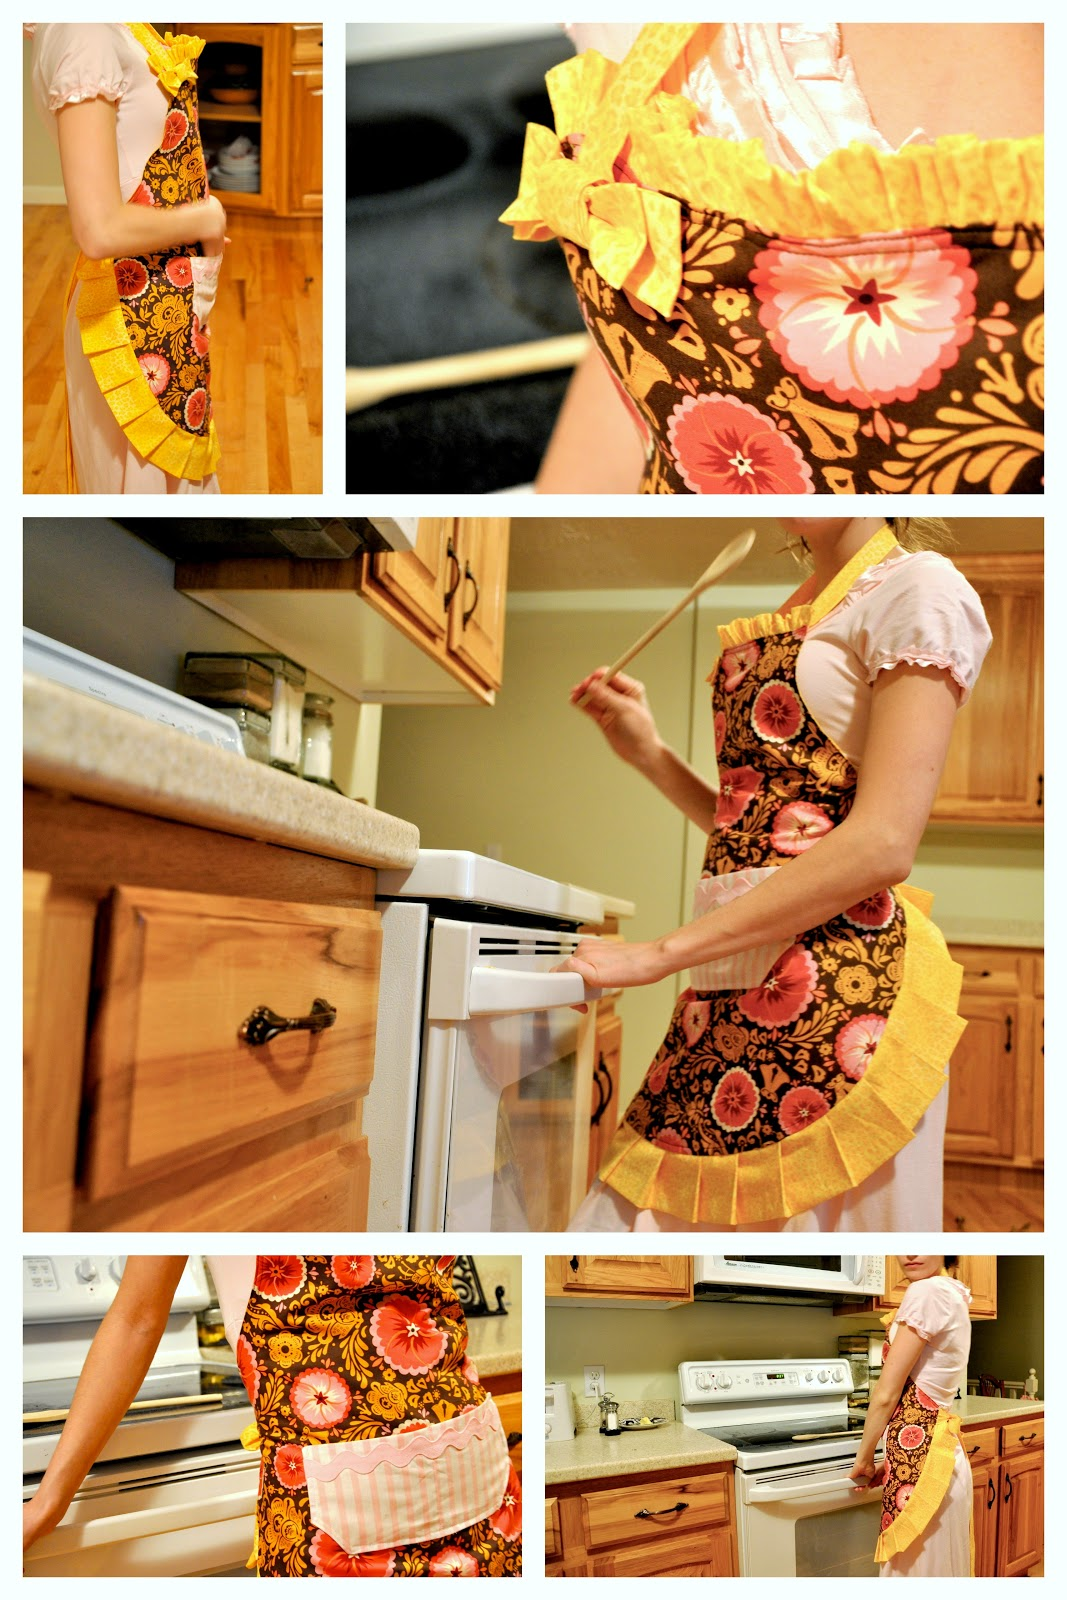 Cute Kitchen Aprons Fan For Exhaust Friday Finds  27 43 Free Tutorials And Patterns